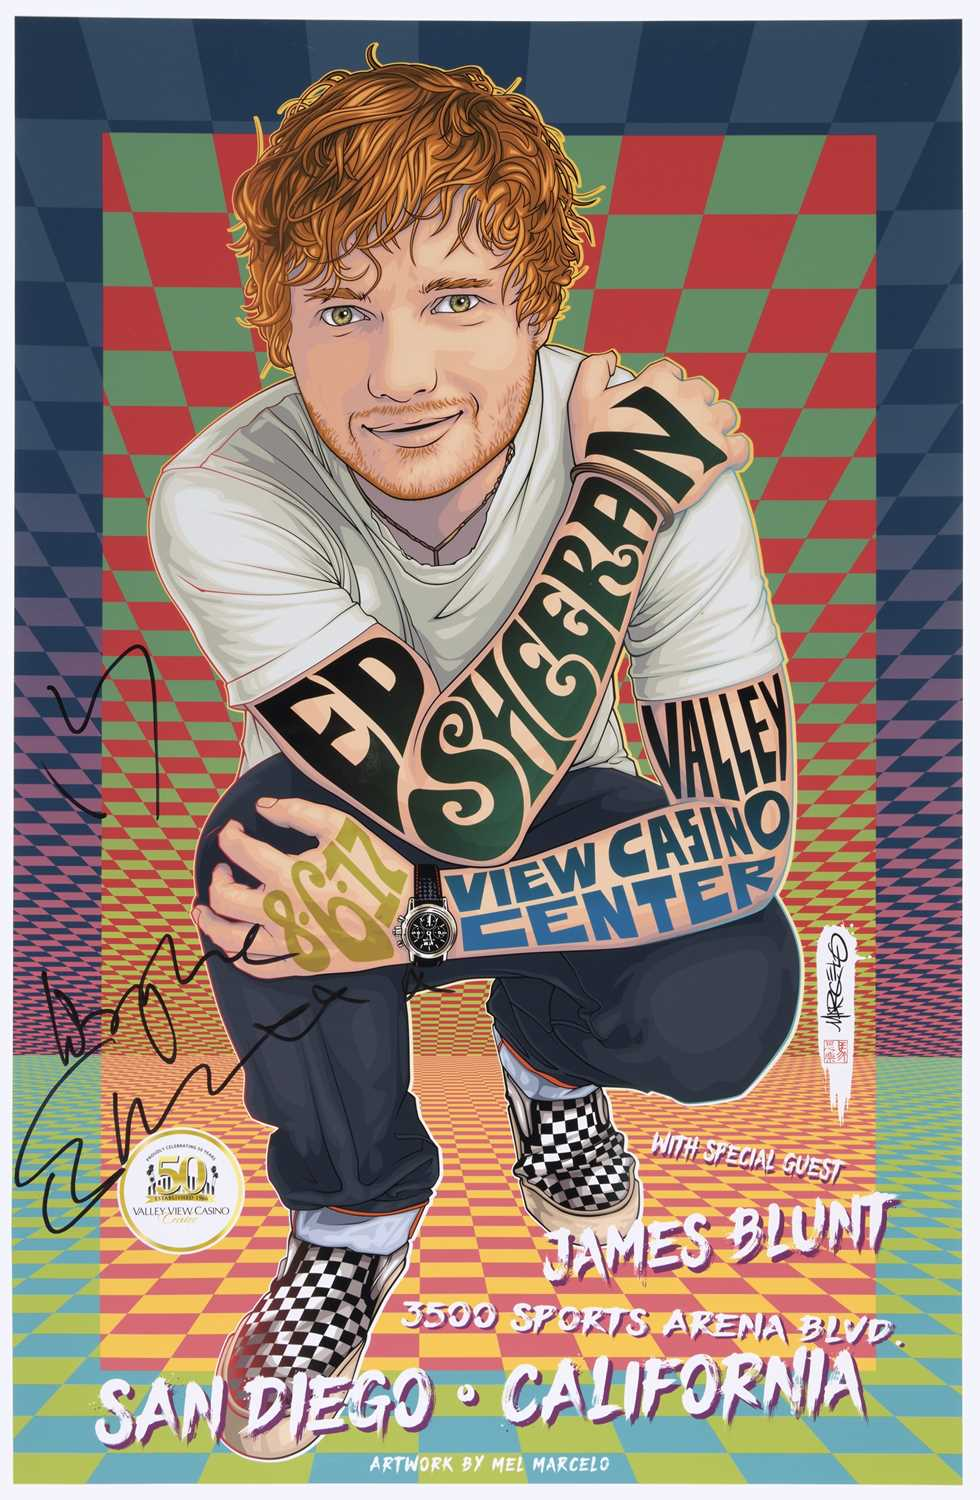 Signed Ed Sheeran Poster, Valley View Casino Center, San Diego, 6 August 2017 Ed Sheeran played to